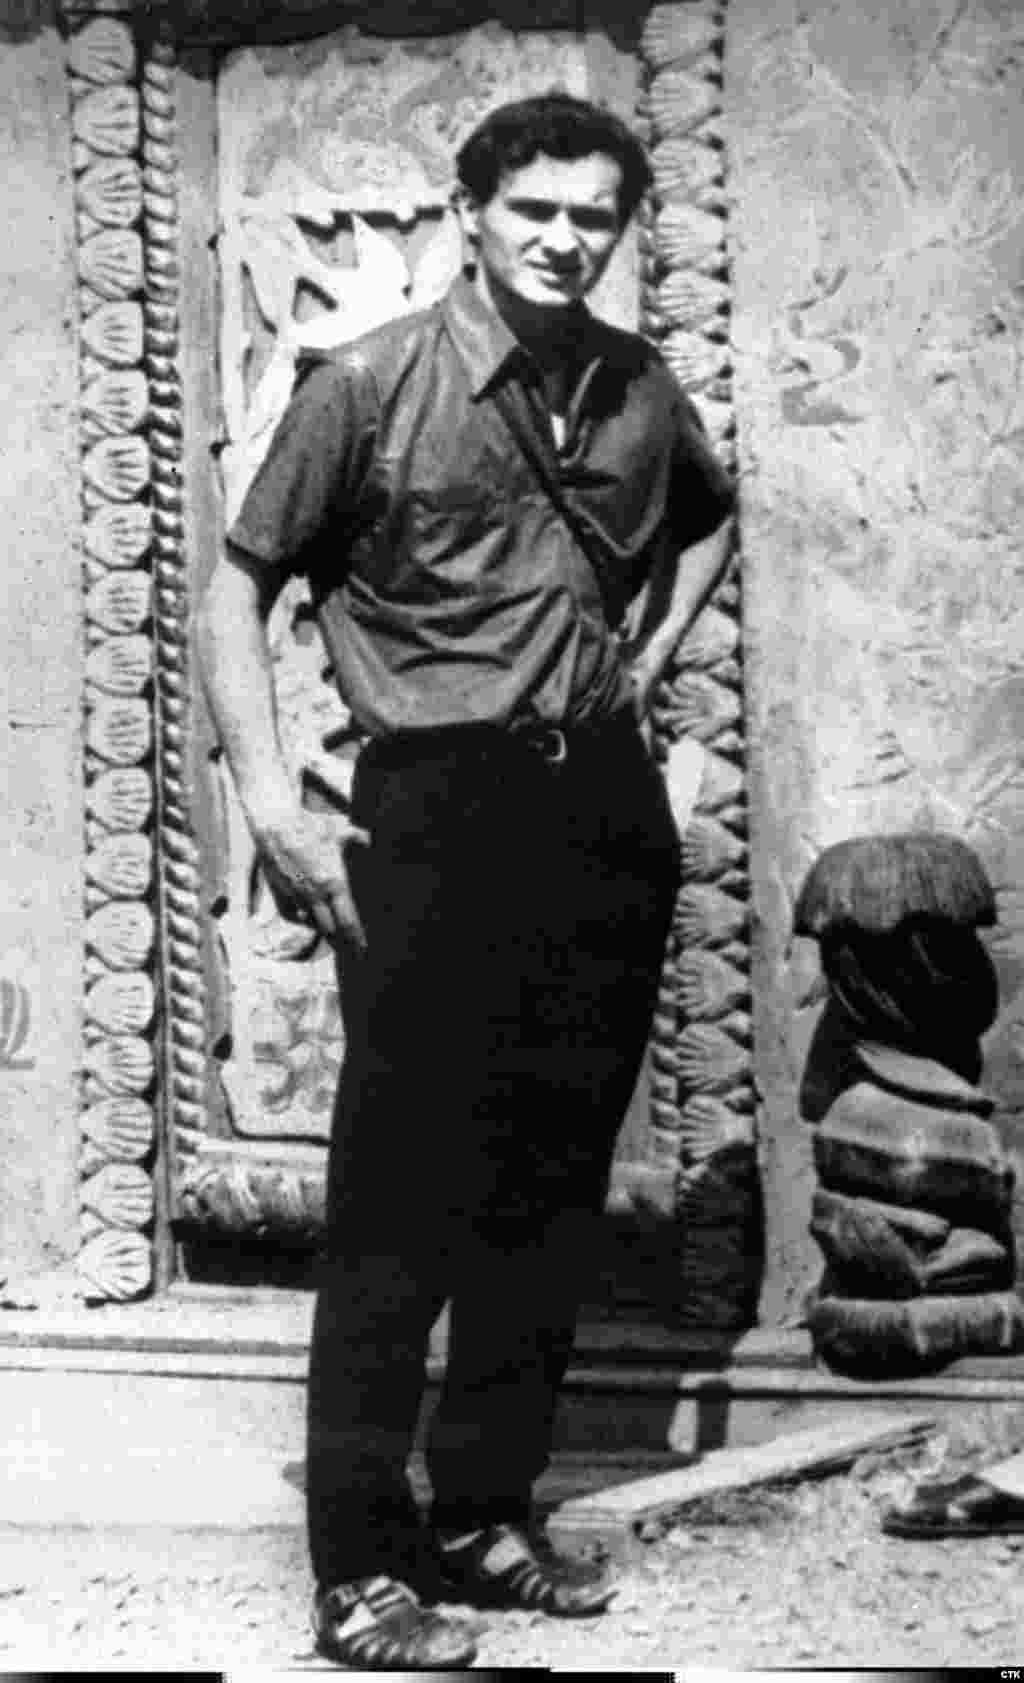 Palach in the summer of 1968 in Samarkand, Uzbekistan. He studied history at Charles University in Prague.